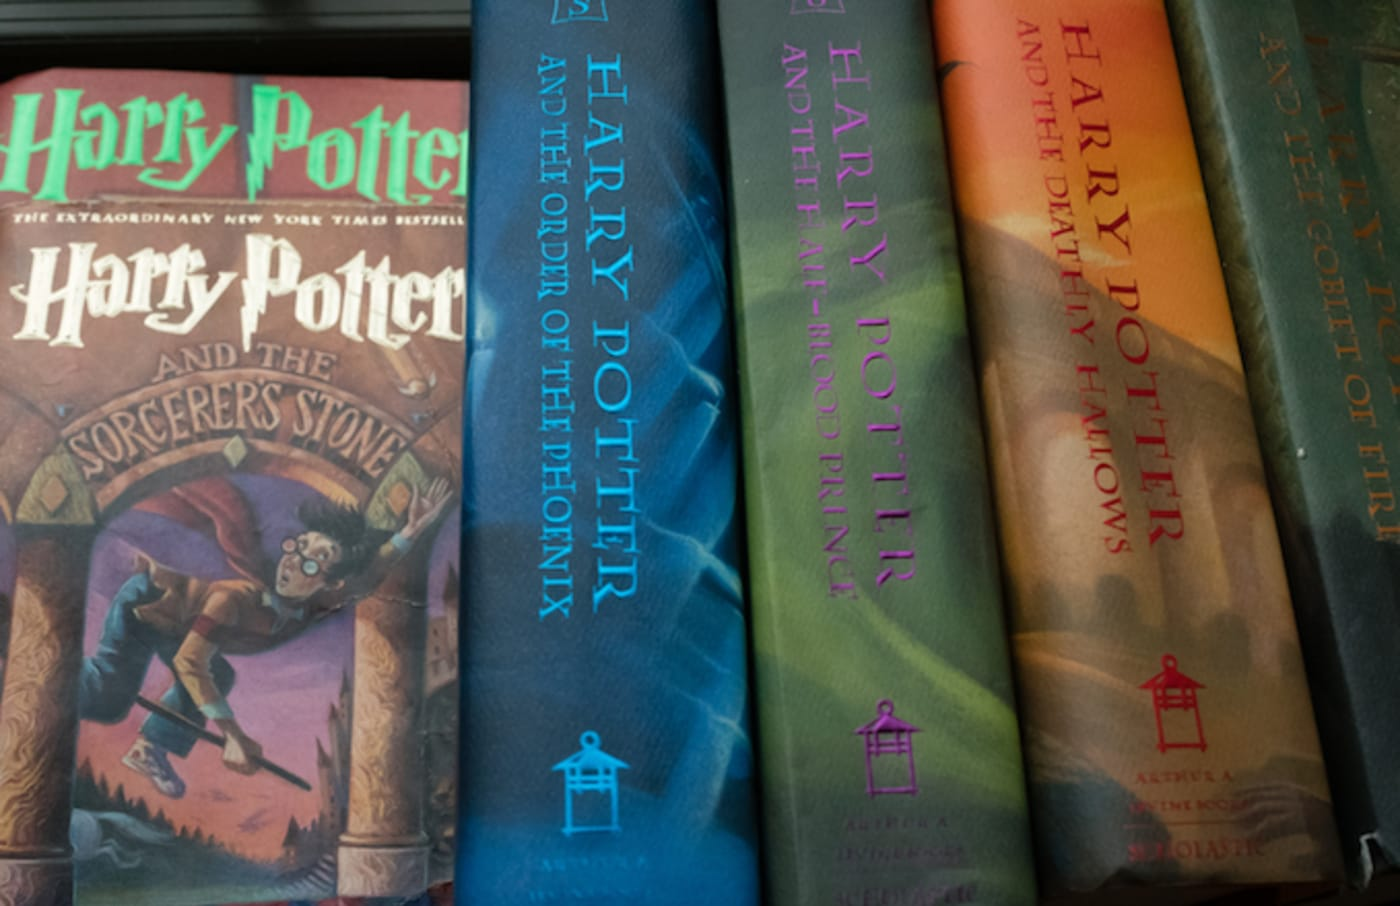 A collection of Harry Potter books.